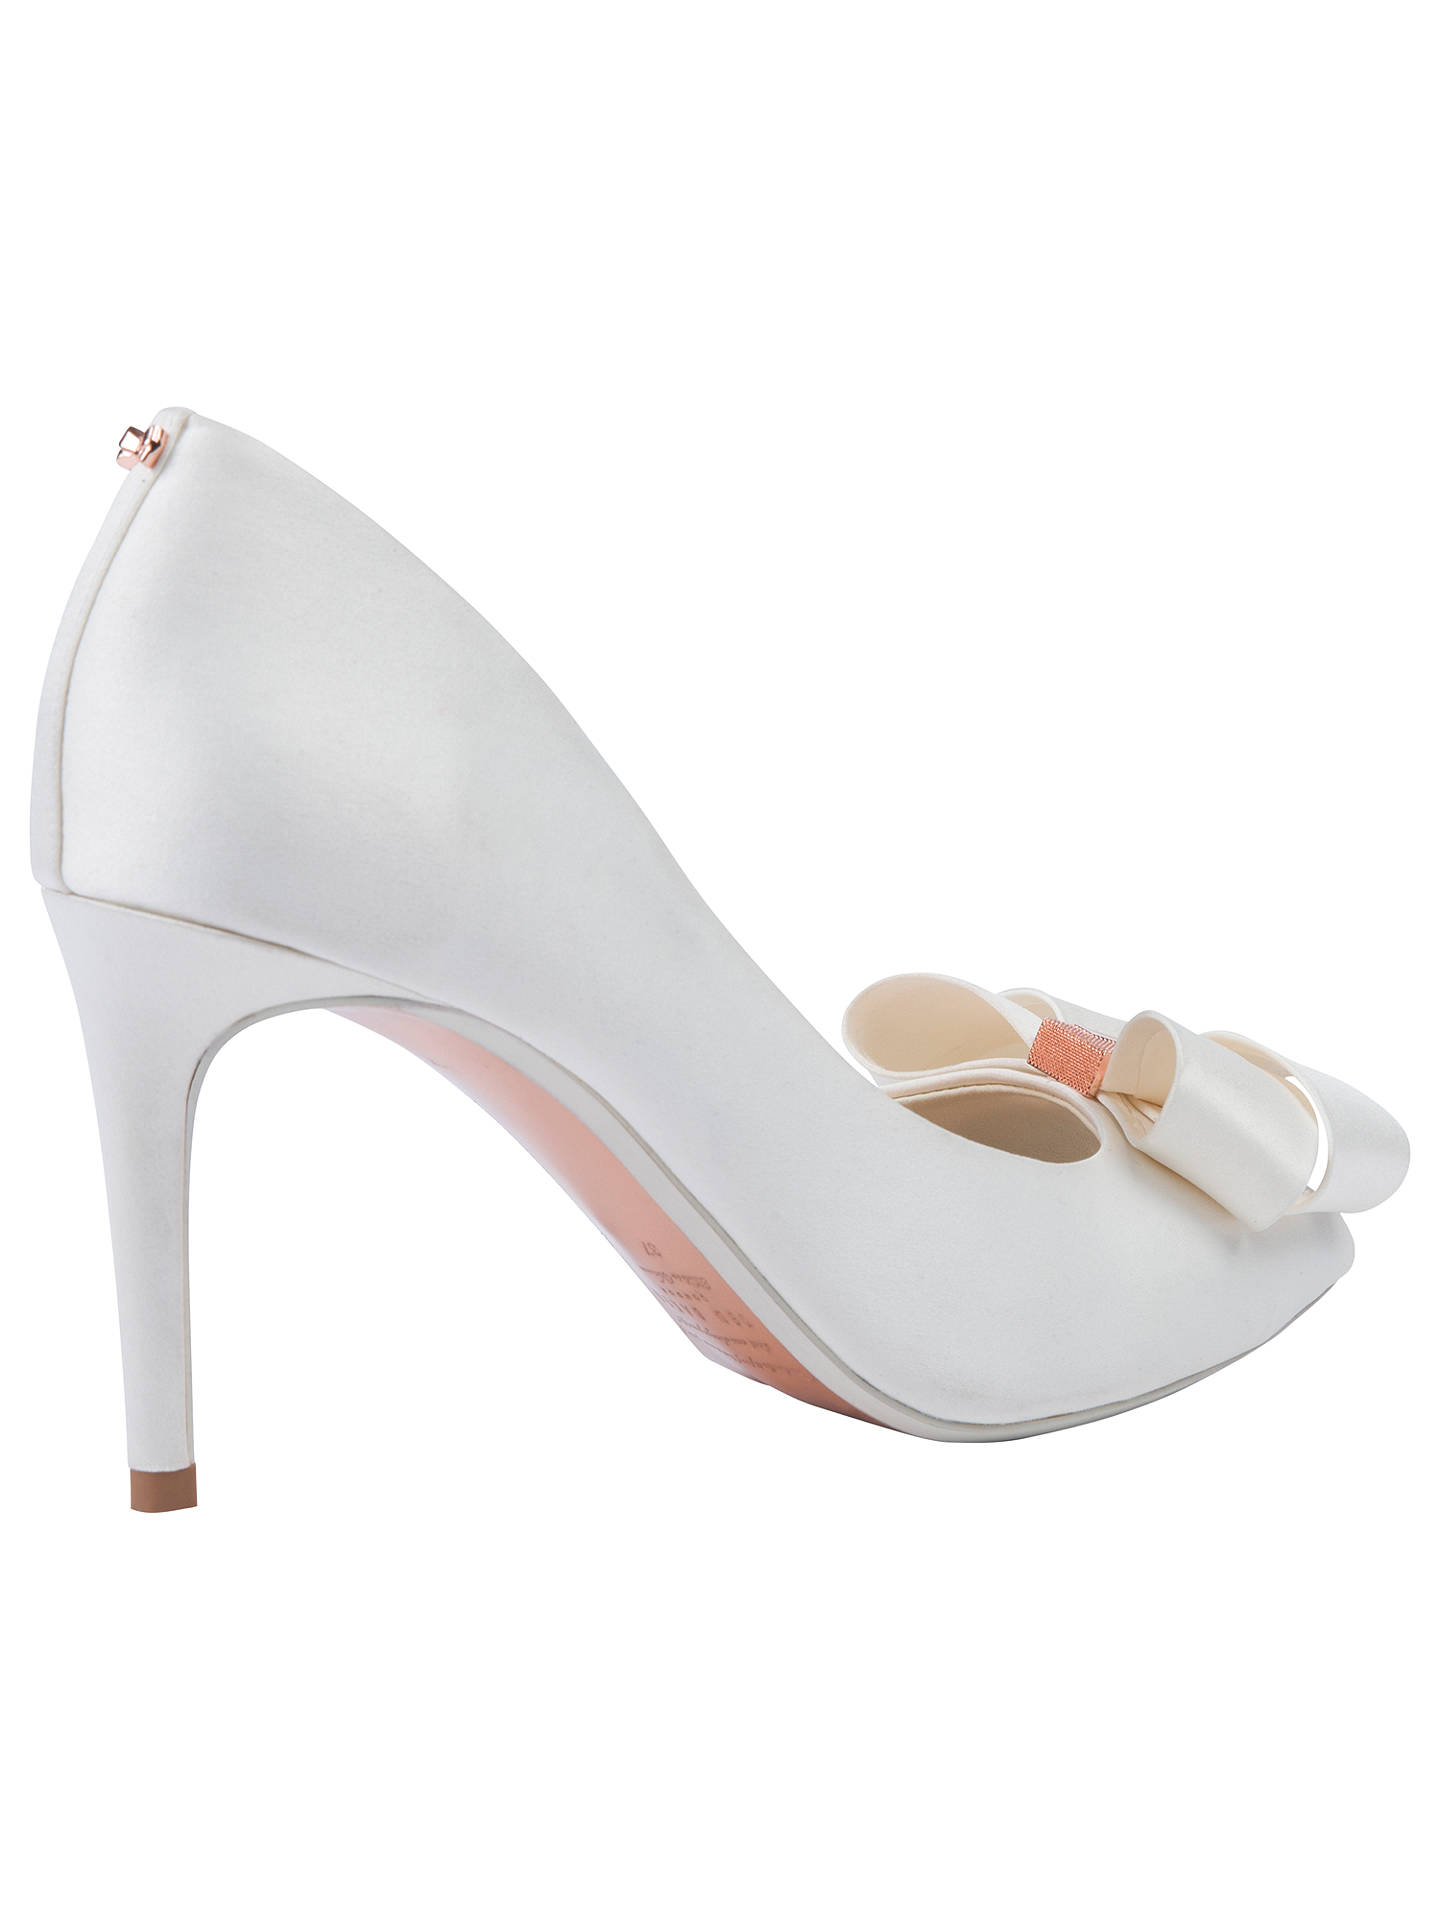 BuyTed Baker Vylett Bow Peep Toe Court Shoes, Ivory Satin, 4 Online at johnlewis.com